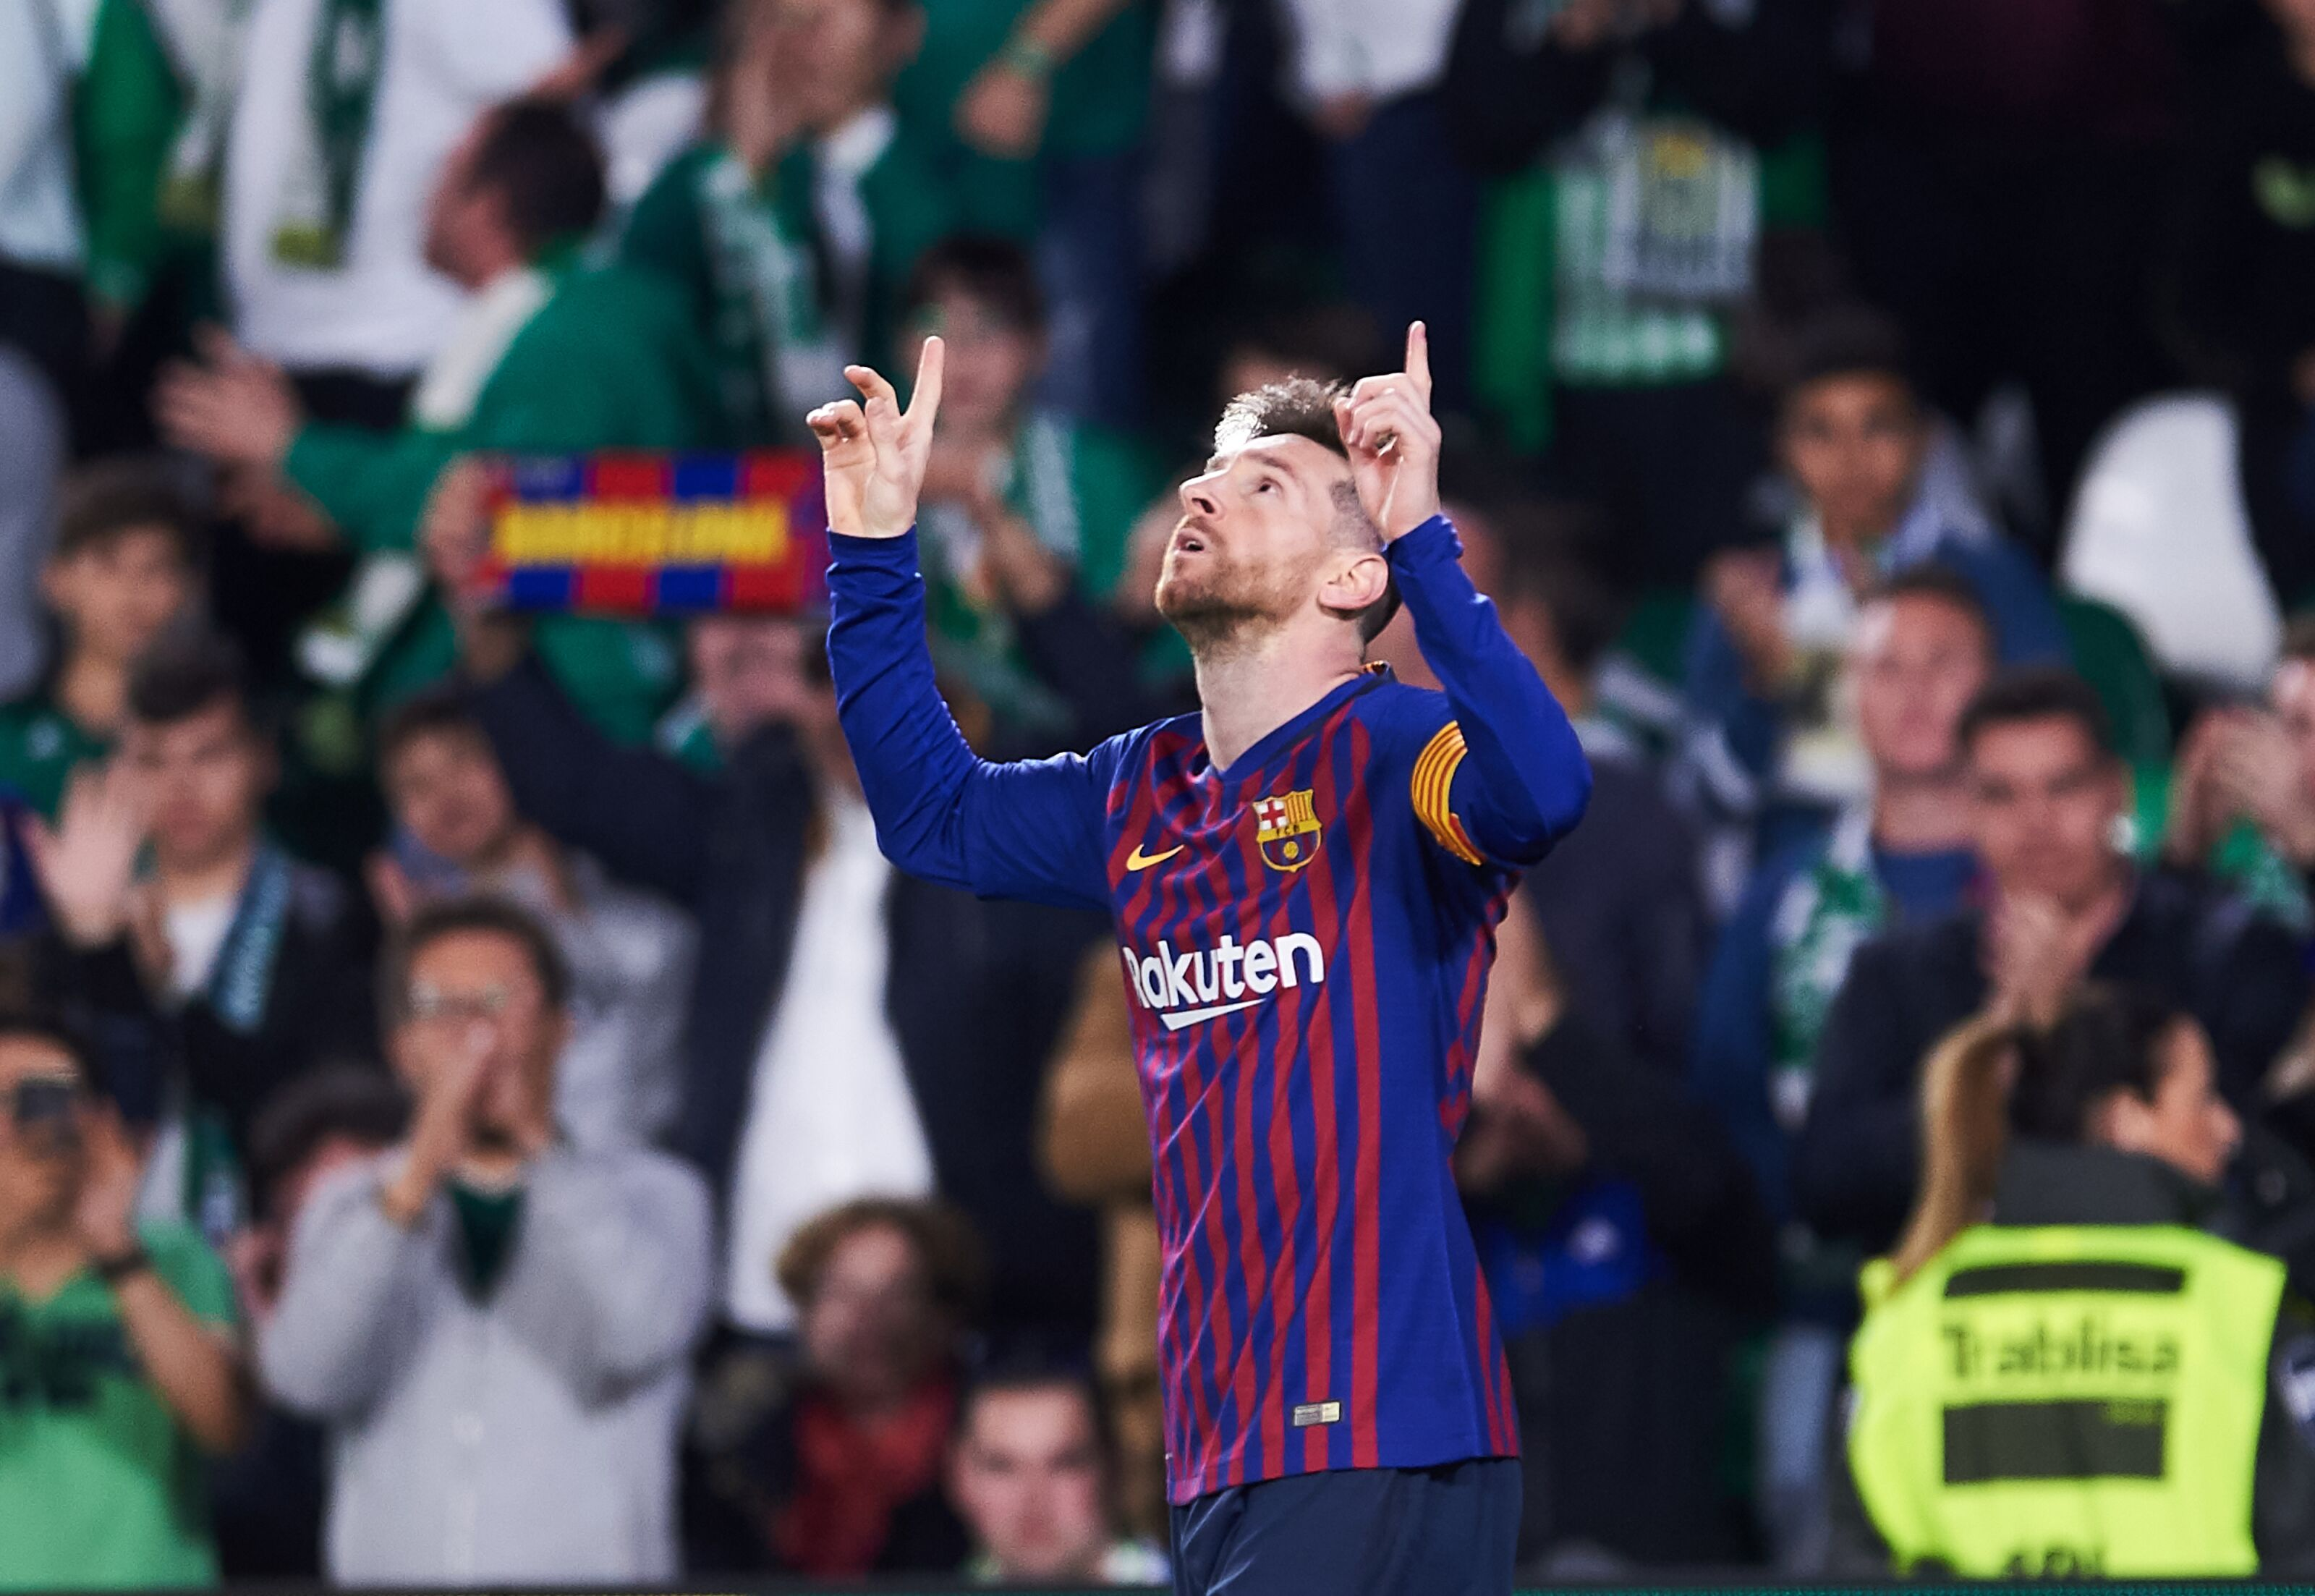 The Barcelona goal which got applause from Real Betis supporters